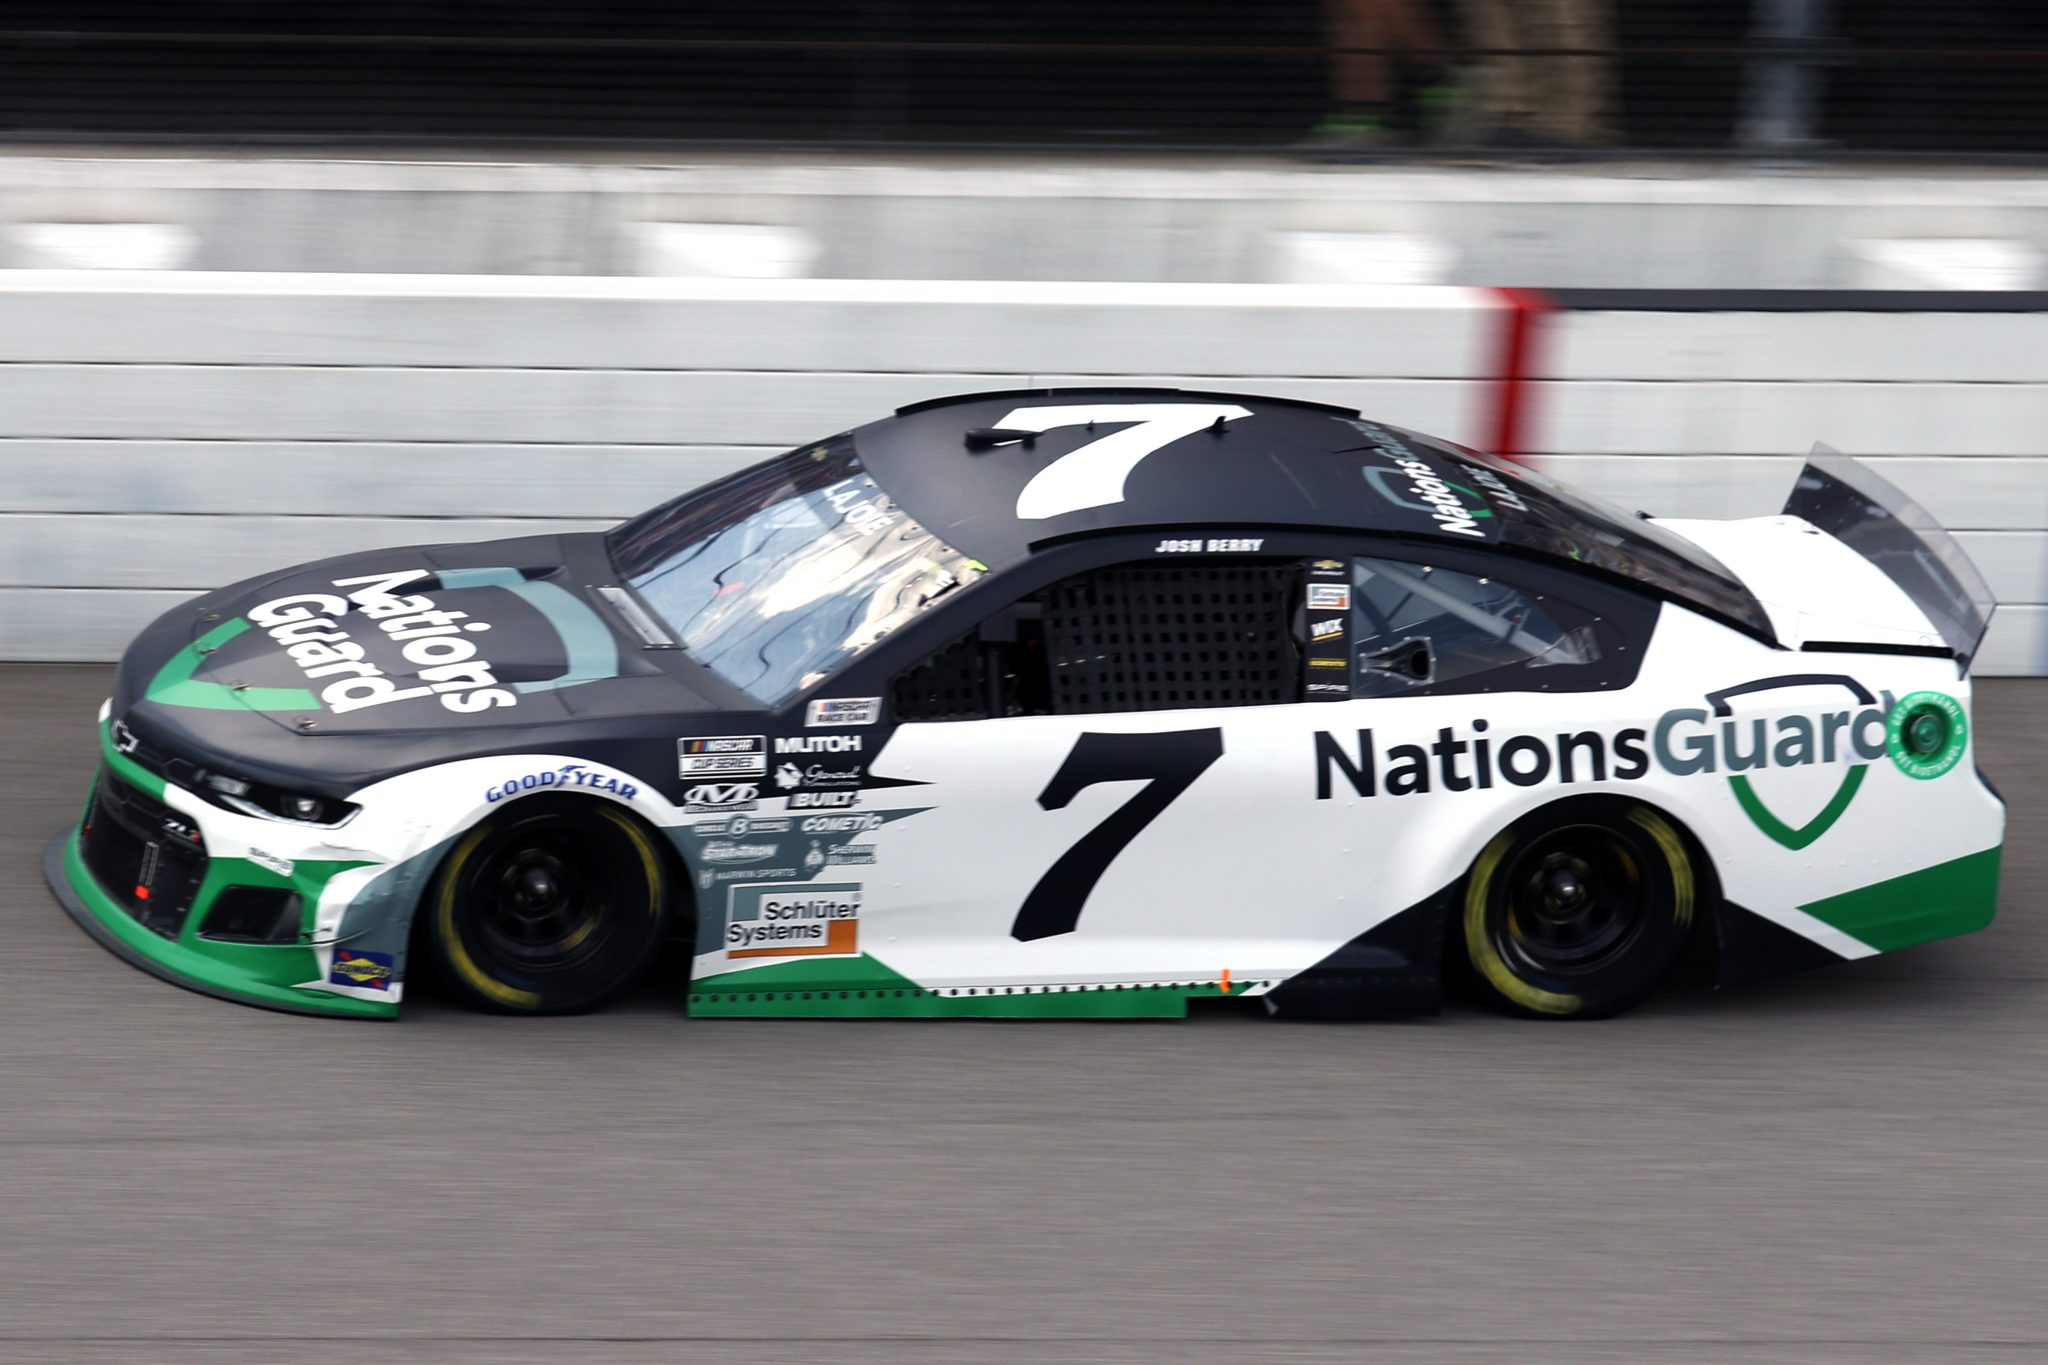 BROOKLYN, MICHIGAN - AUGUST 22: Josh Berry, driver of the #7 Nations Guard Chevrolet, drives during the NASCAR Cup Series FireKeepers Casino 400 at Michigan International Speedway on August 22, 2021 in Brooklyn, Michigan. (Photo by Sean Gardner/Getty Images)   Getty Images